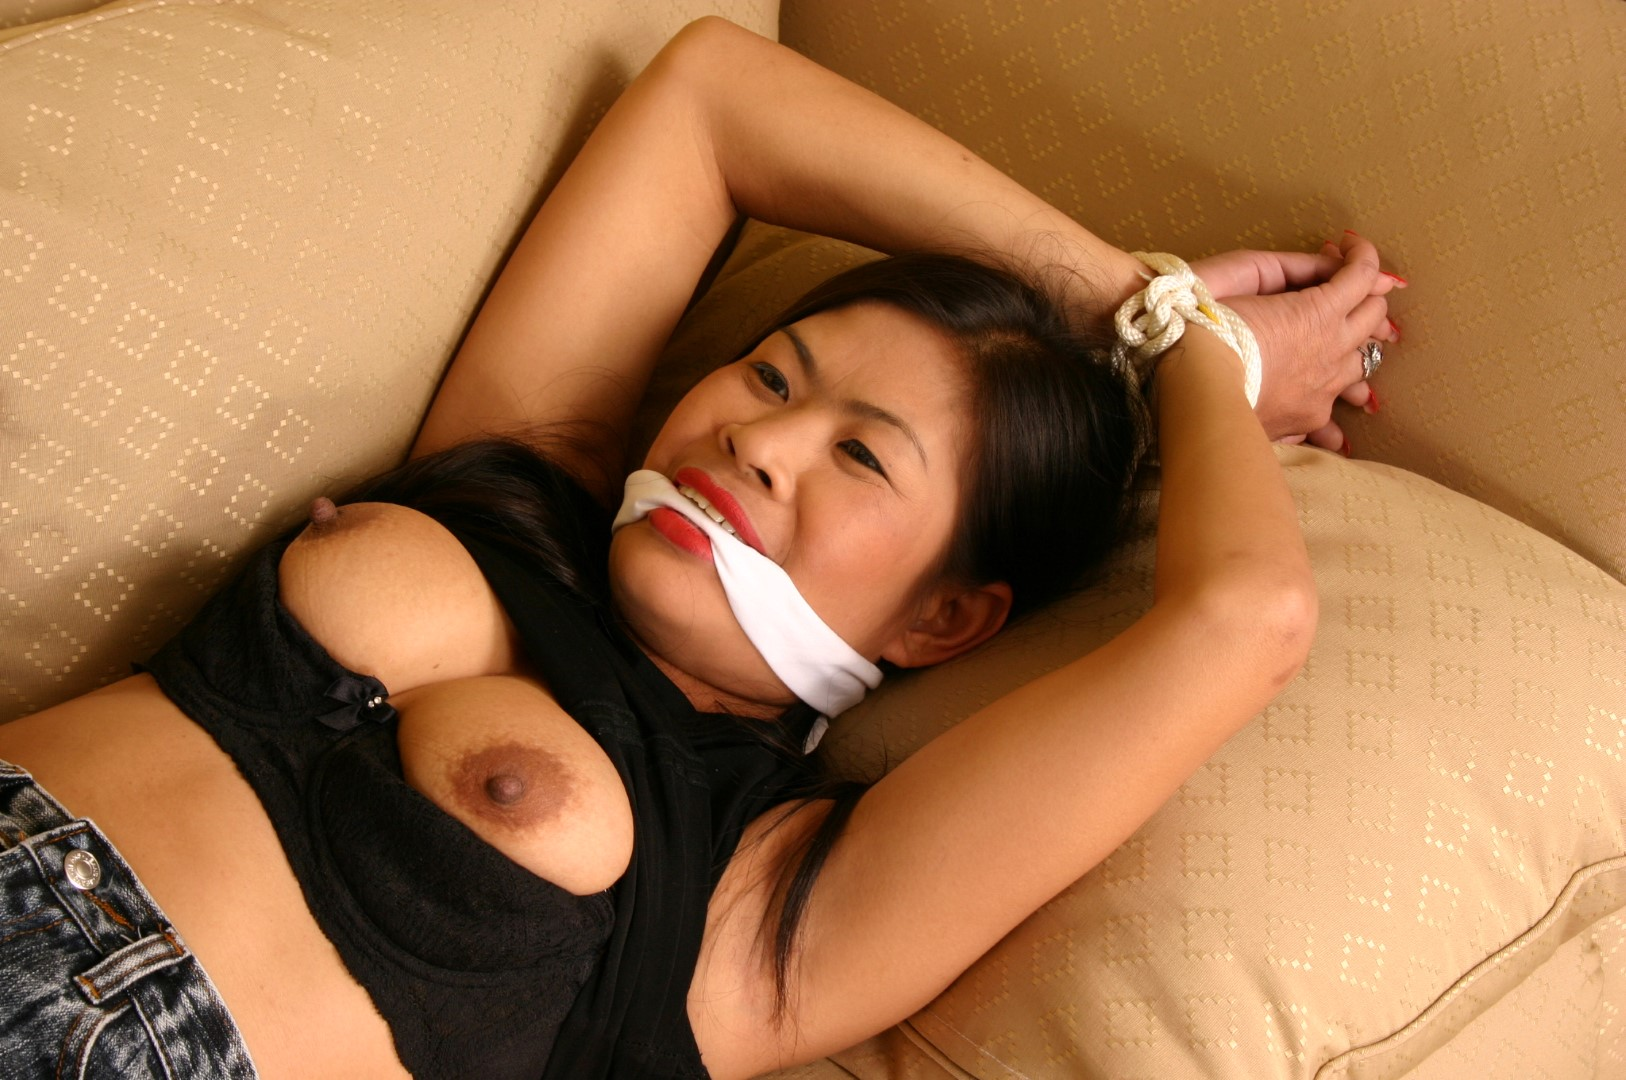 Gorgeous slut naked asian bdsm like